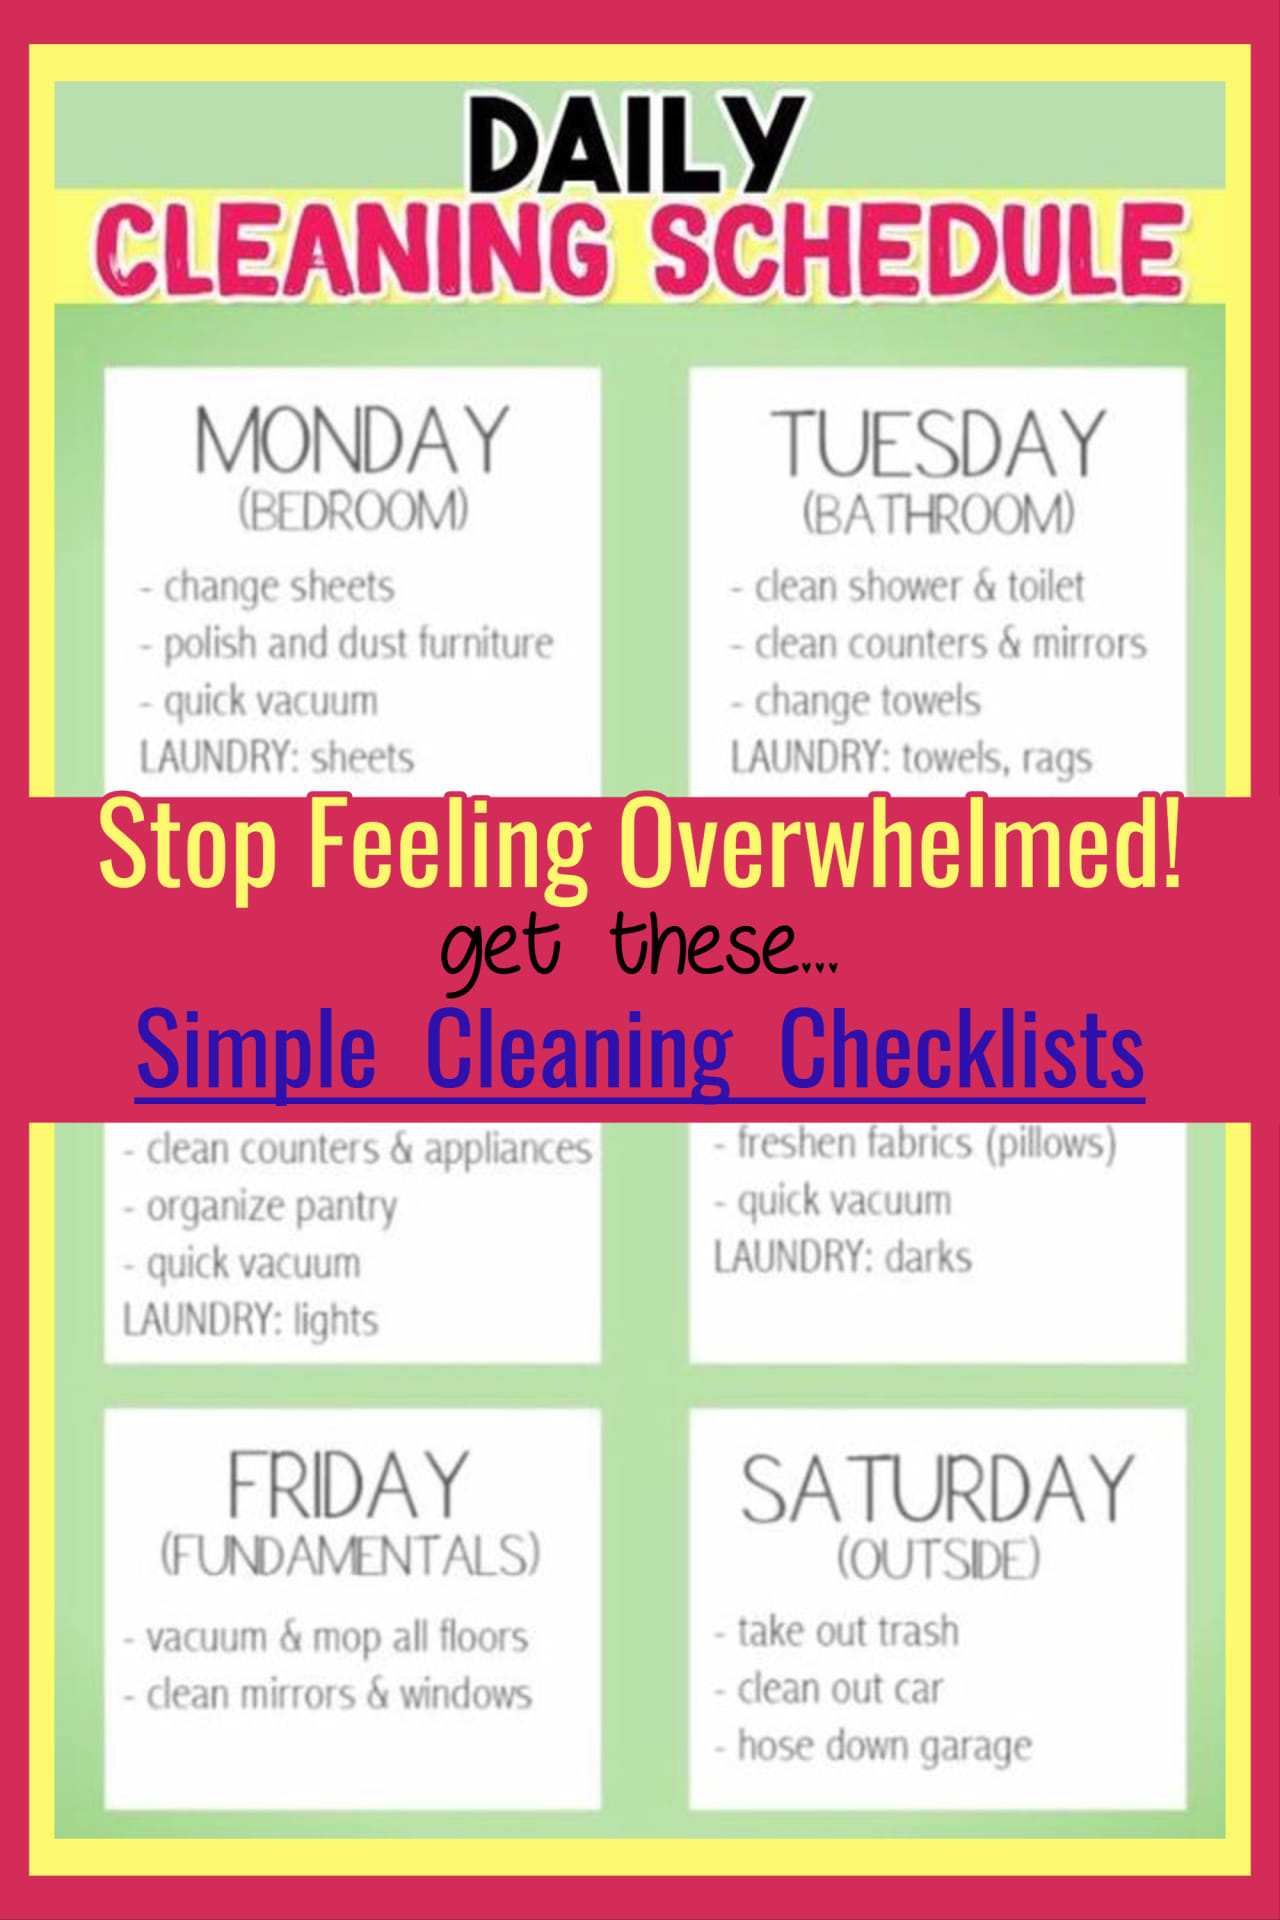 Need a SIMPLE weekly house cleaning schedule for working moms OR for stay at home moms? Print these daily, weekly and monthly house cleaning schedules and checklists and put in your household notebook - they're sure to help you get your messy house under control (and clutter-free) – AND make your weekly housekeeping chores SO much easier WITHOUT feeling overwhelmed!.